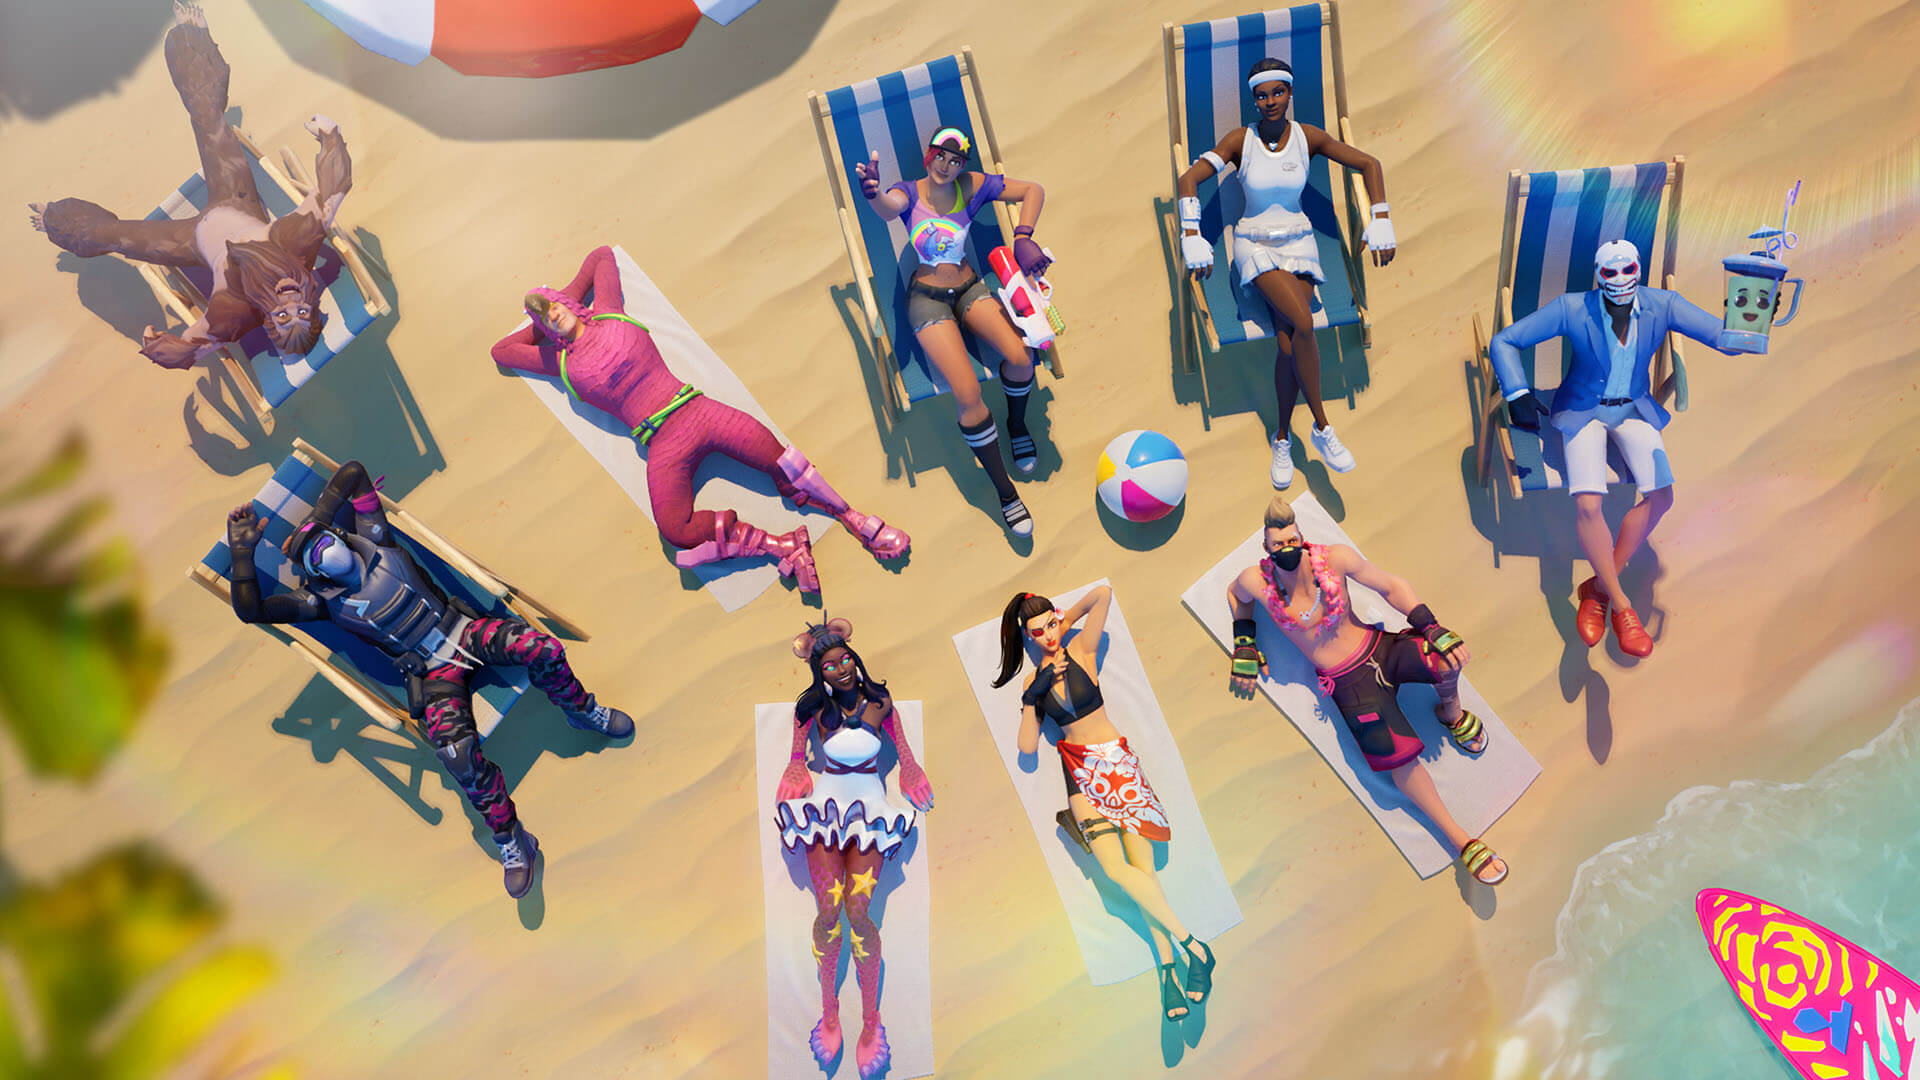 Fortnite_blog_14-days-of-summer_09BR_14DoS_Announce_NewsHeader-1920x1080-fa5f73145b6d51533a6b0bd102a3202e329c4df82.jpg